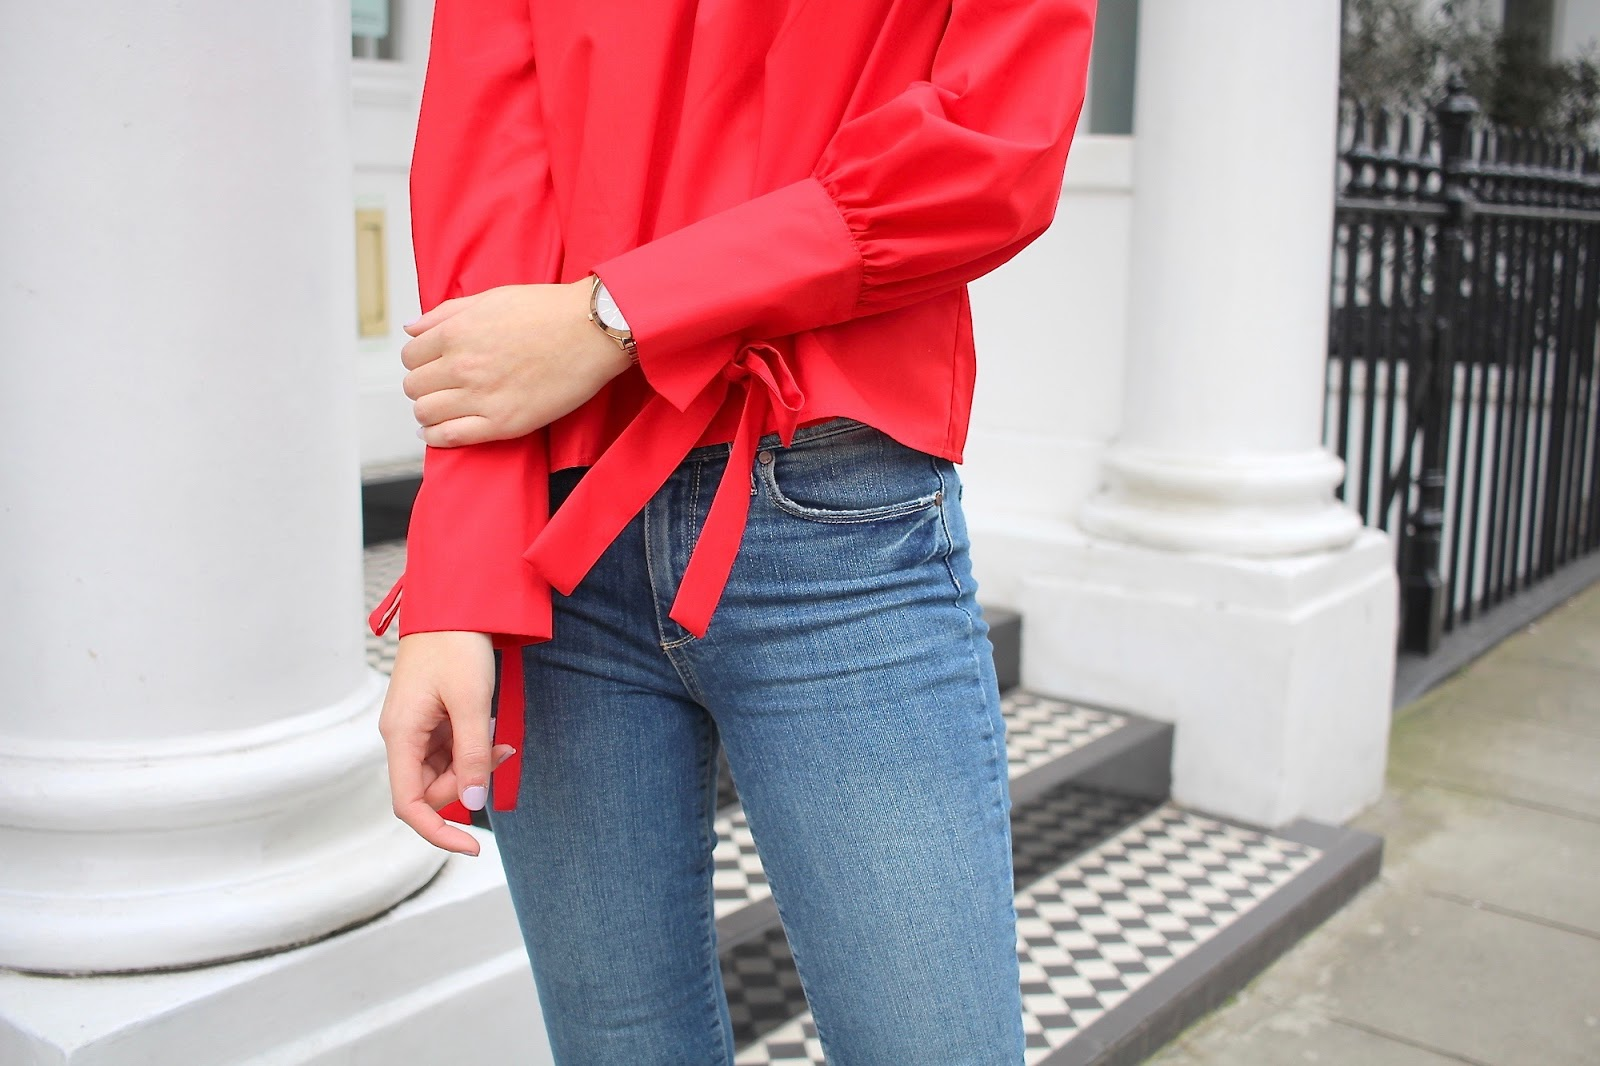 topshop red top peexo personal style blogger london